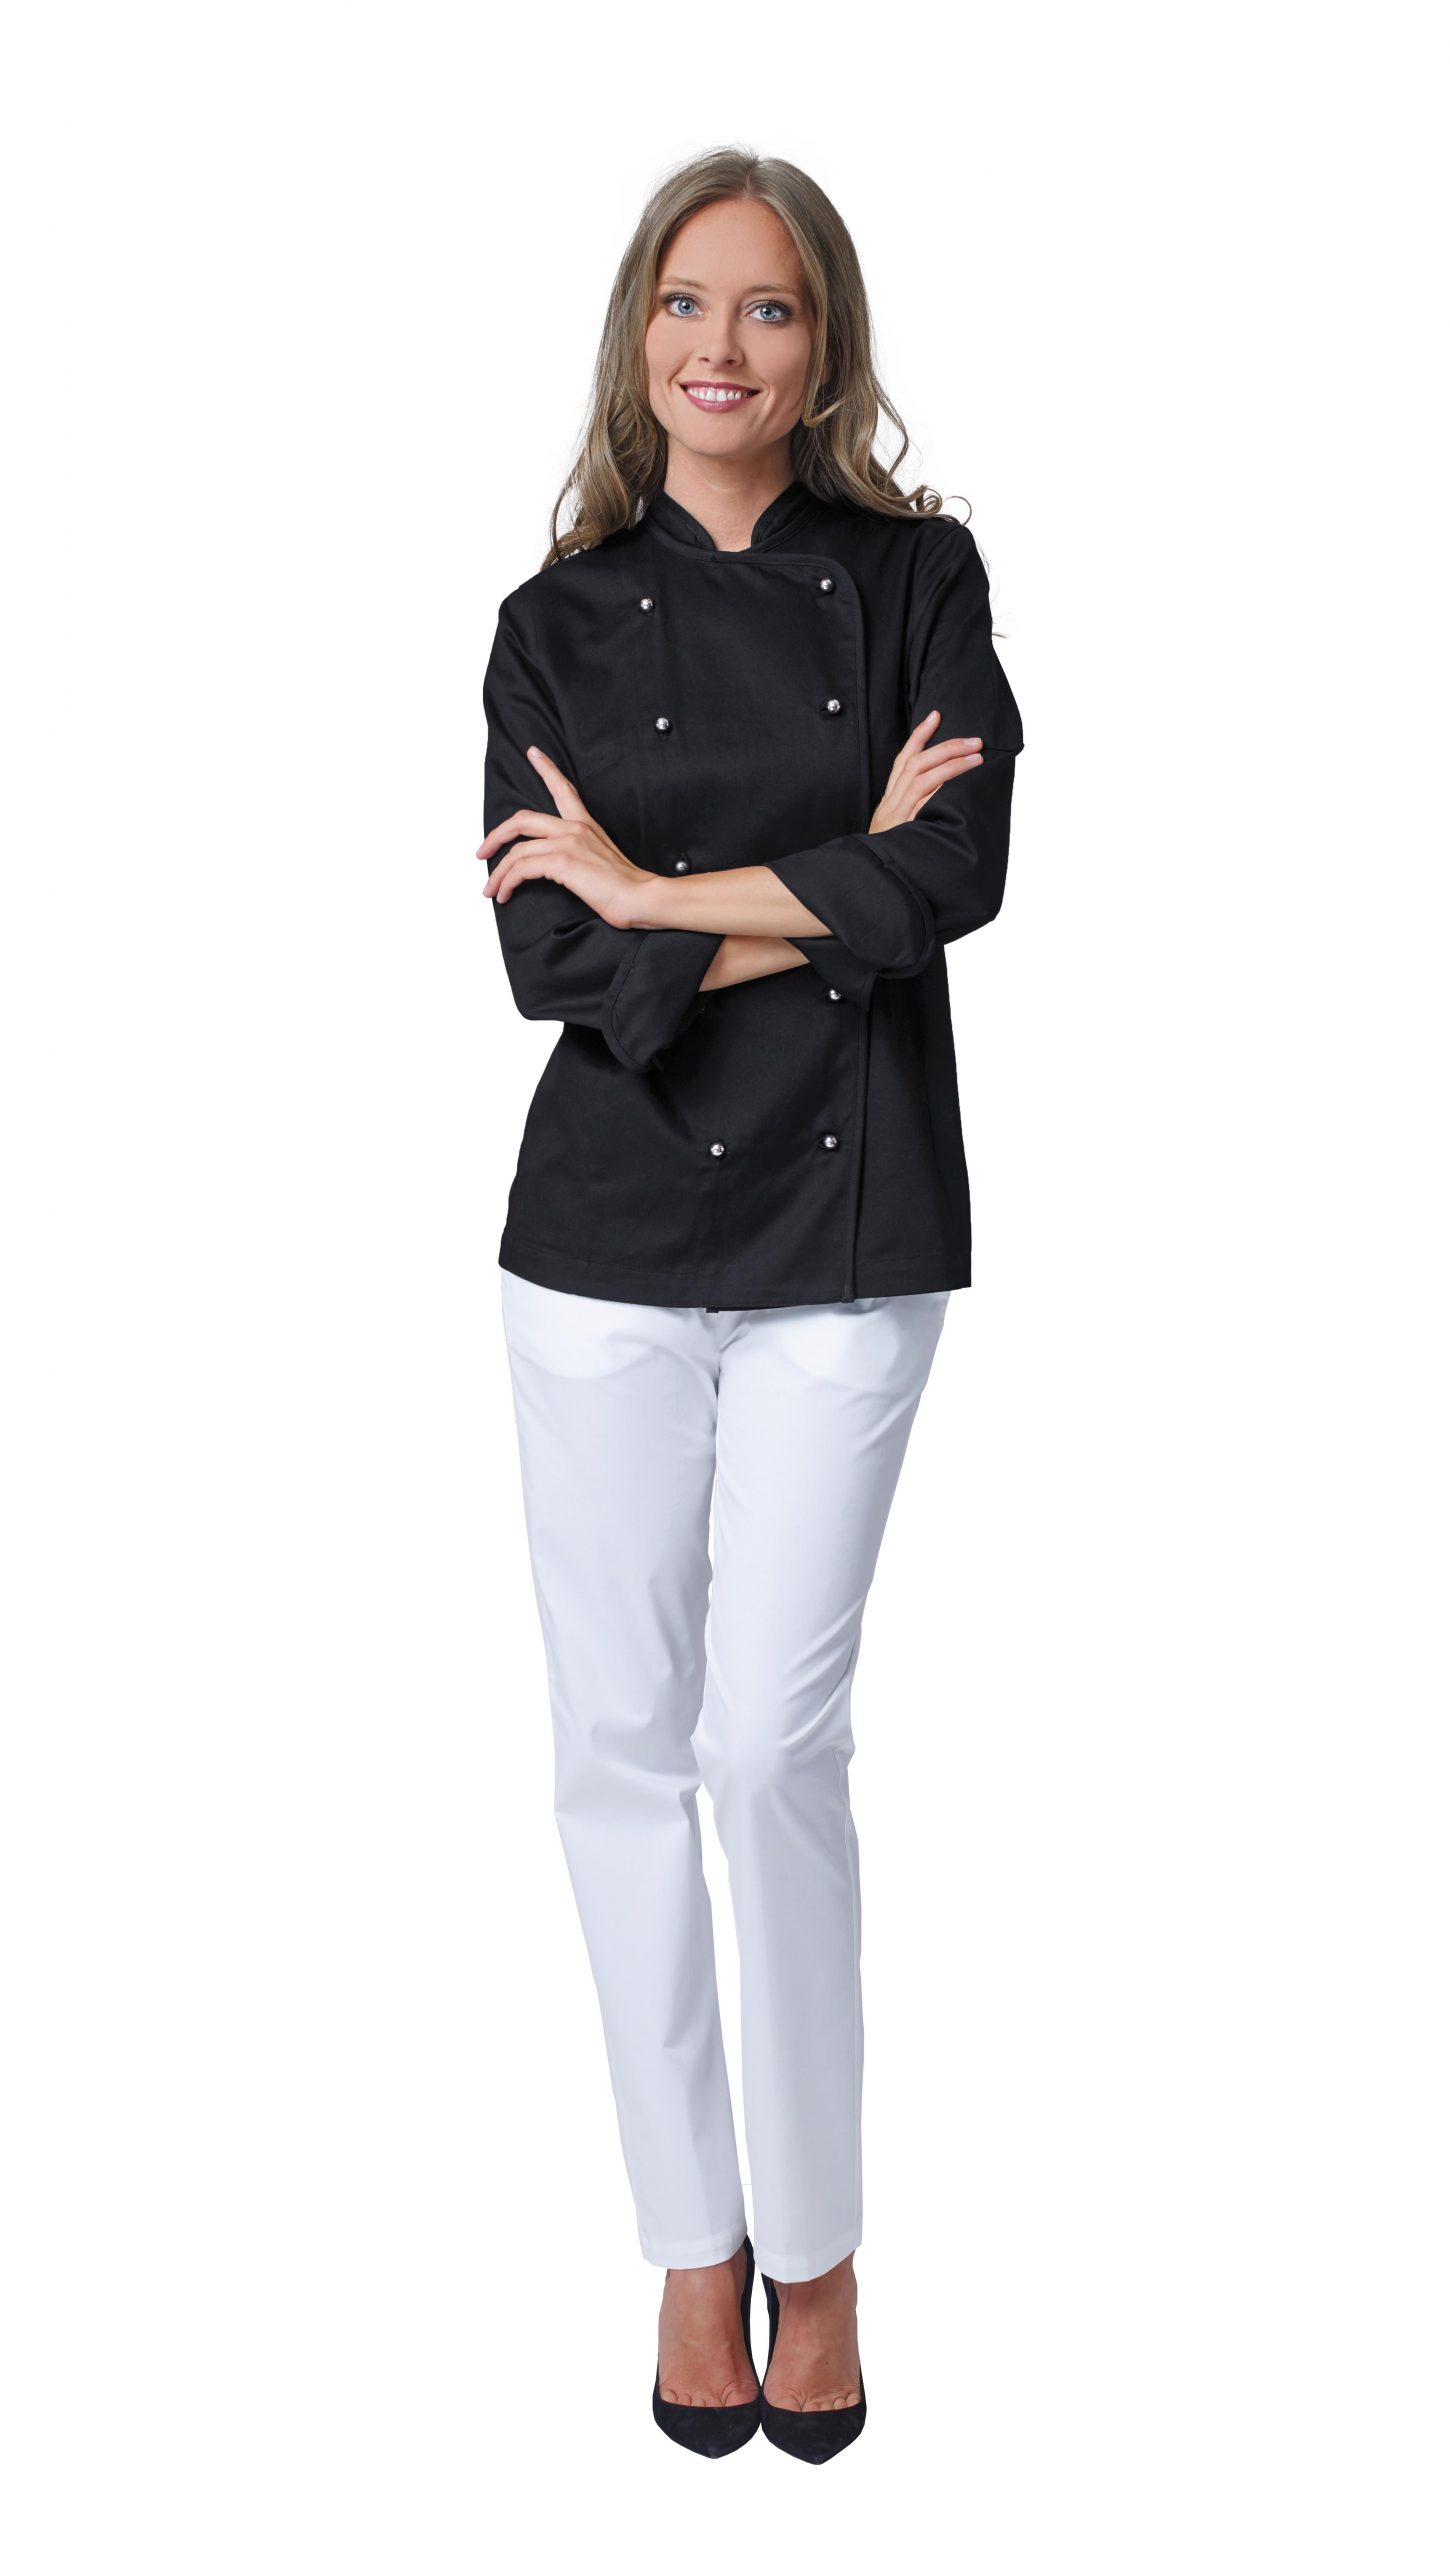 Amabel, Giacca chef